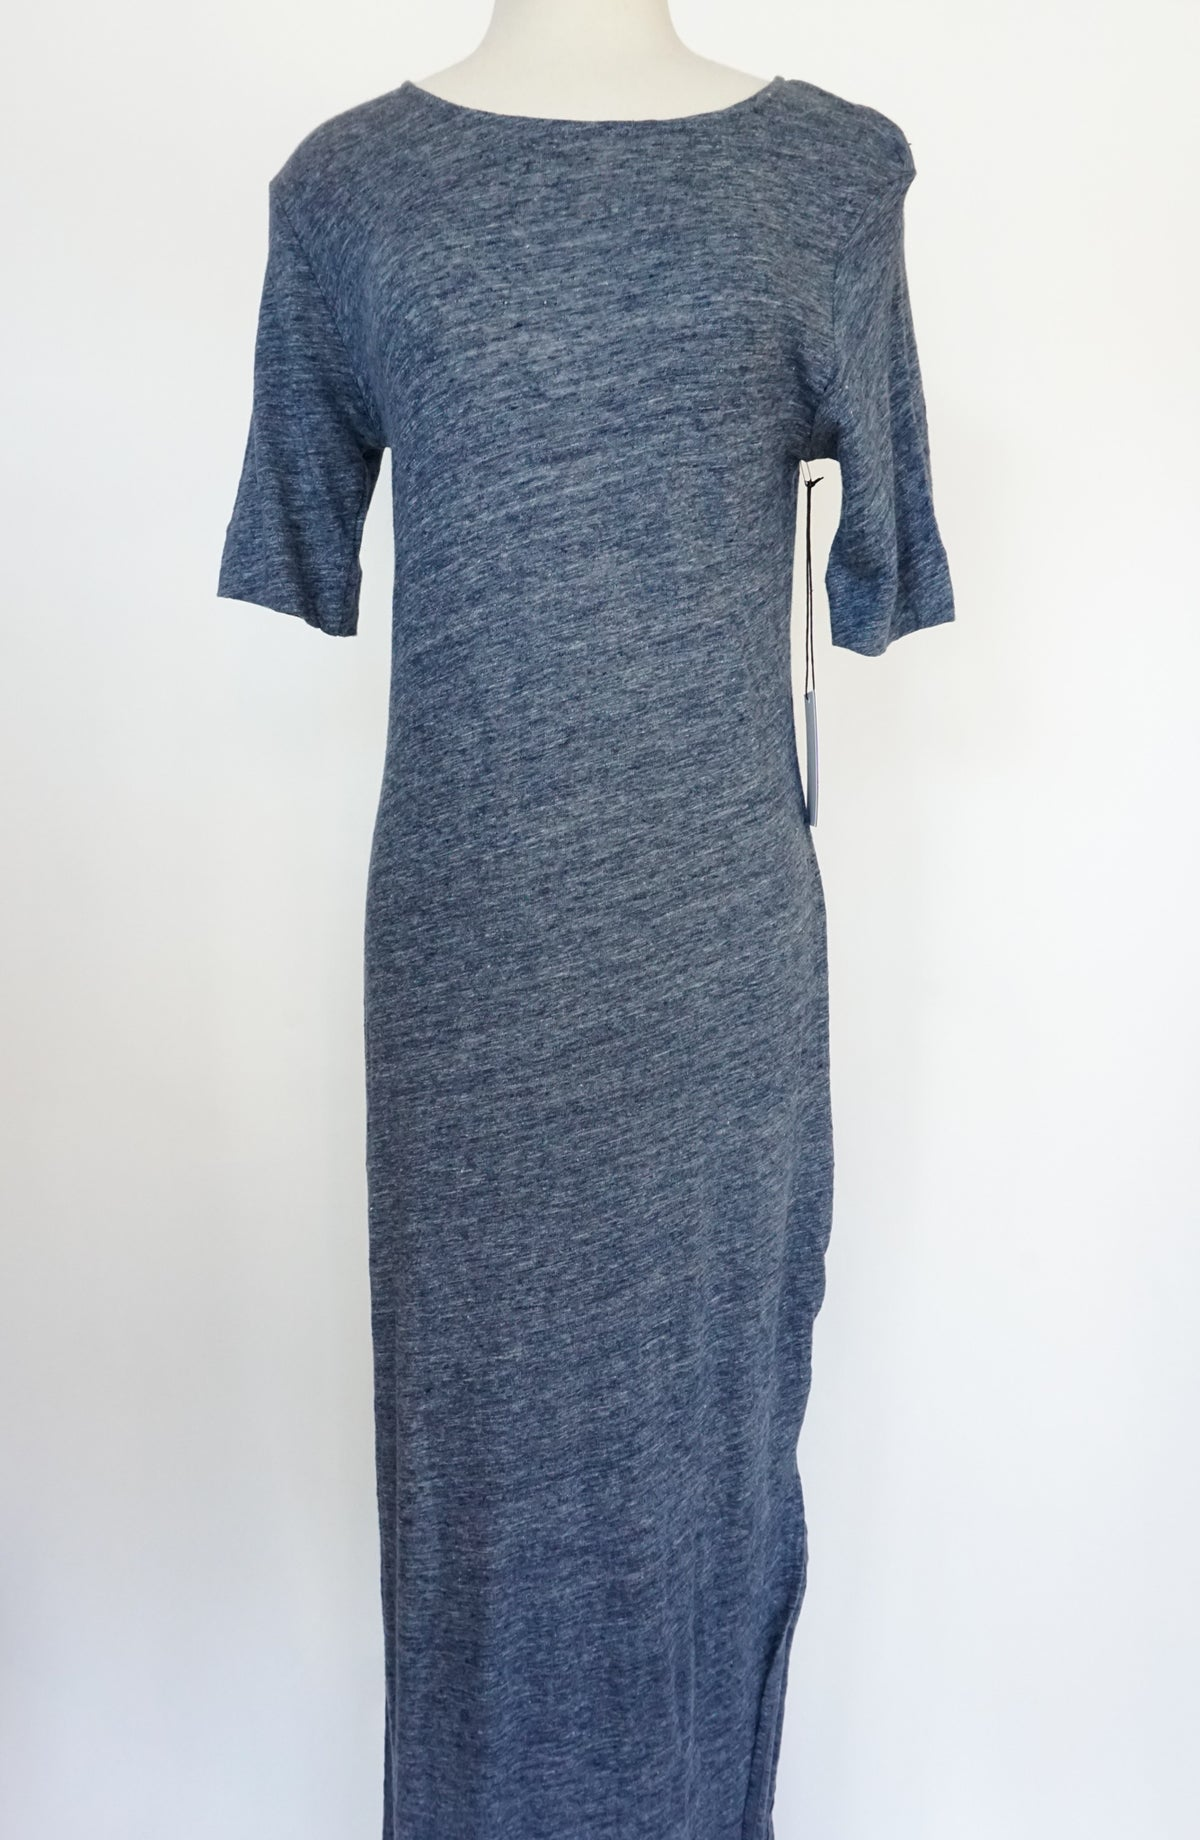 34ºN 118ºW - Blue Maxi Dress